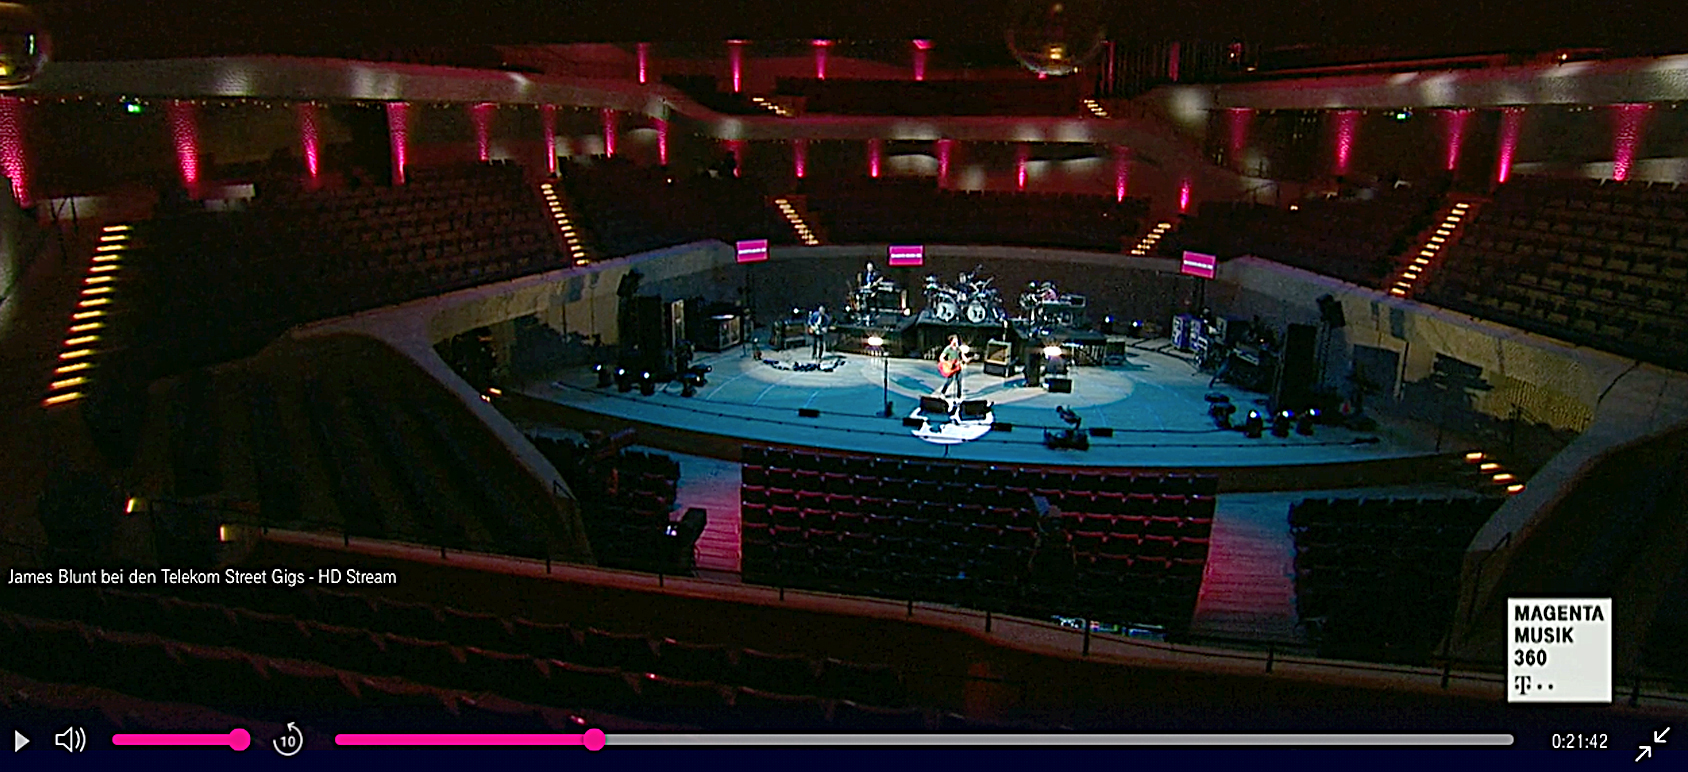 James Blunt continued with the cancelled concert at Hamburg's Elbphilharmonie, performing to an empty hall and streaming the concert to the public.